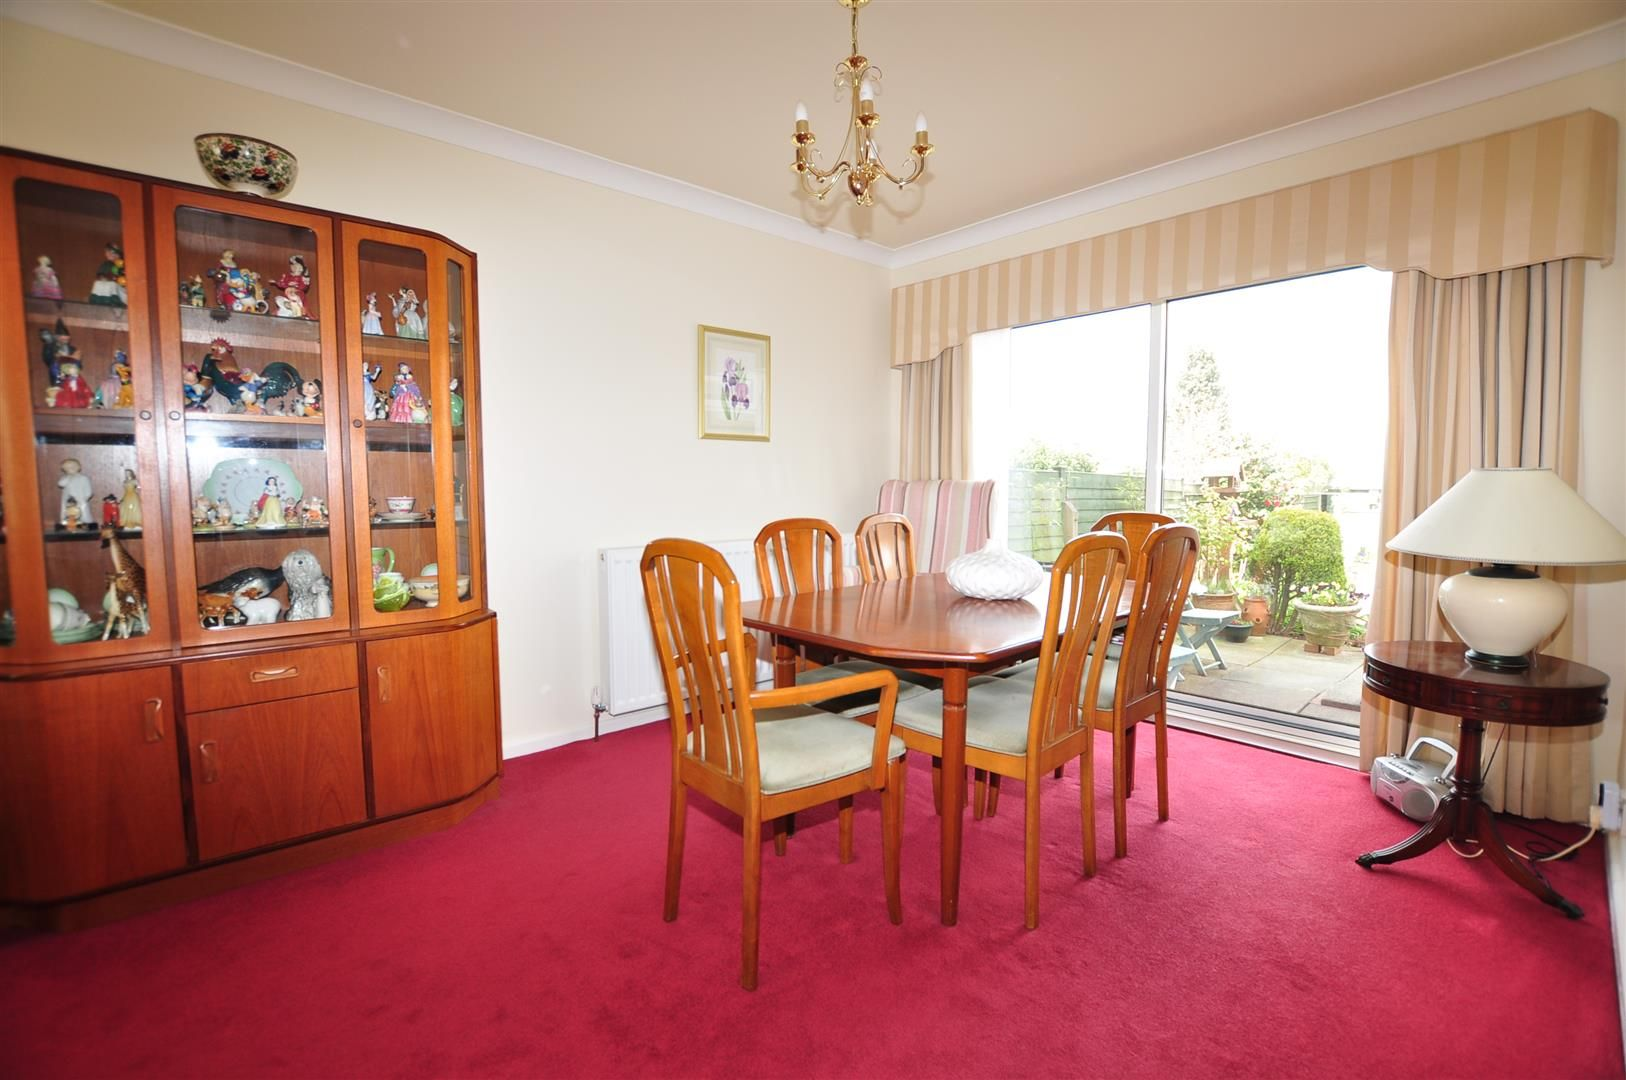 3 bed house for sale in Hagley 3